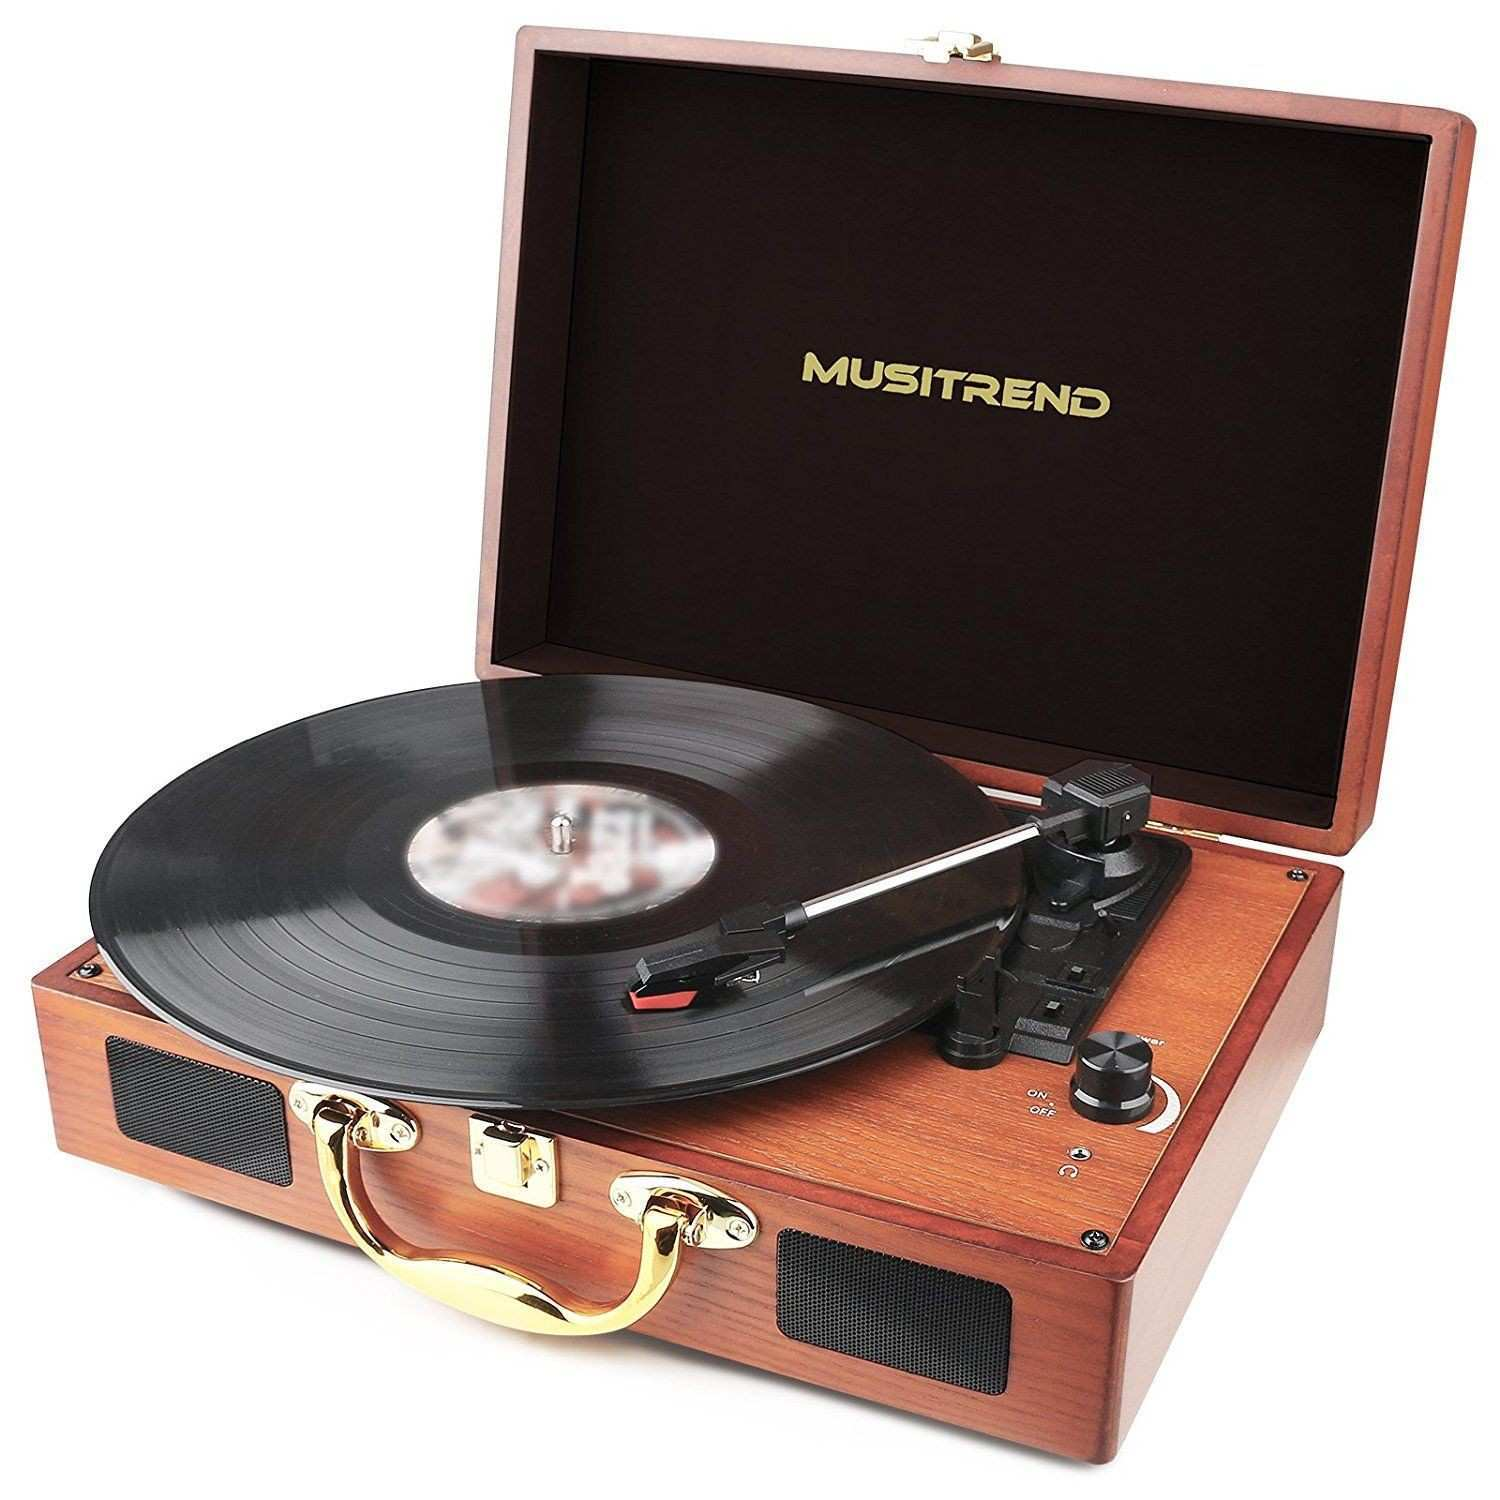 Amazon Musitrend Turntable Portable Suitcase Record Player with